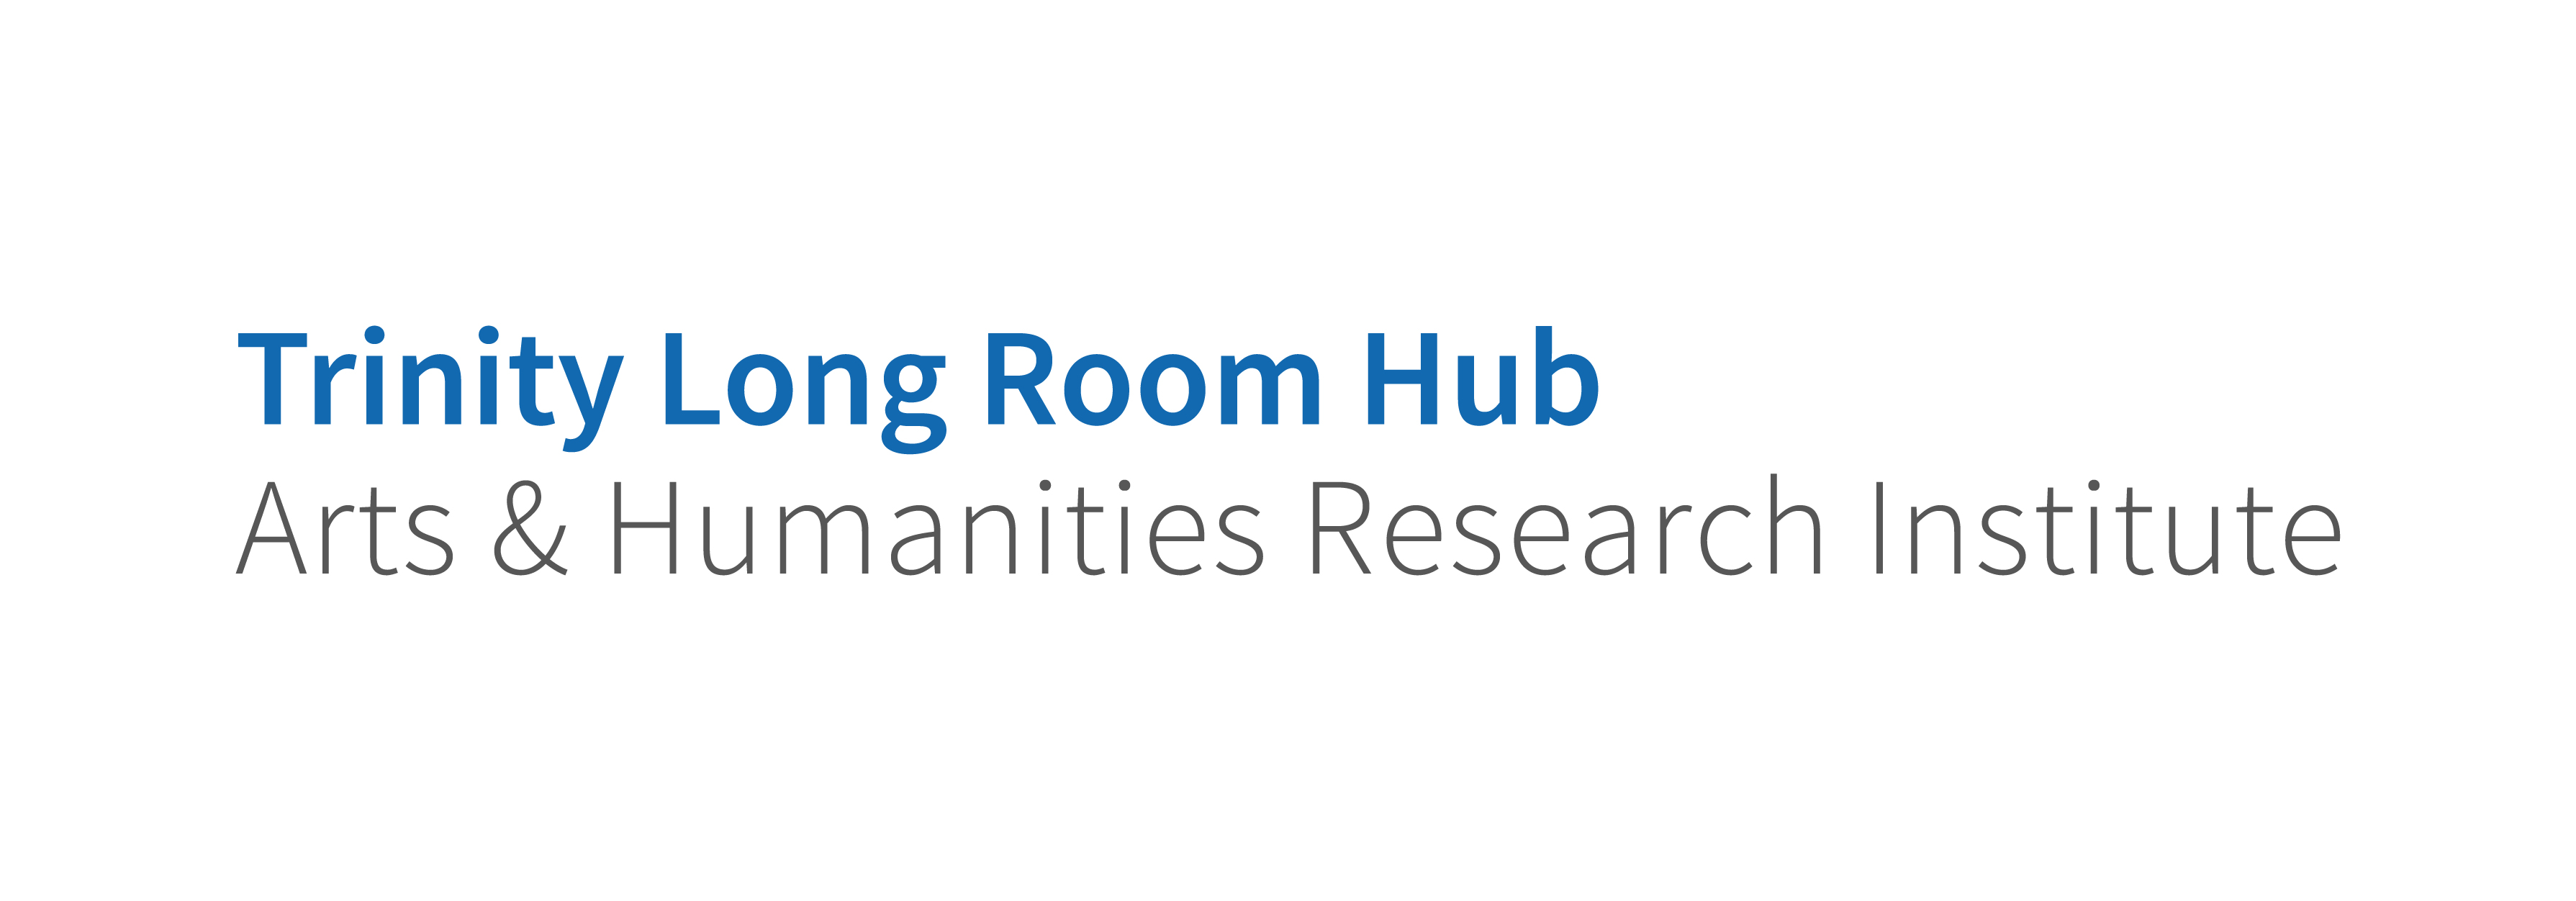 Trinity Long Room Hub logo